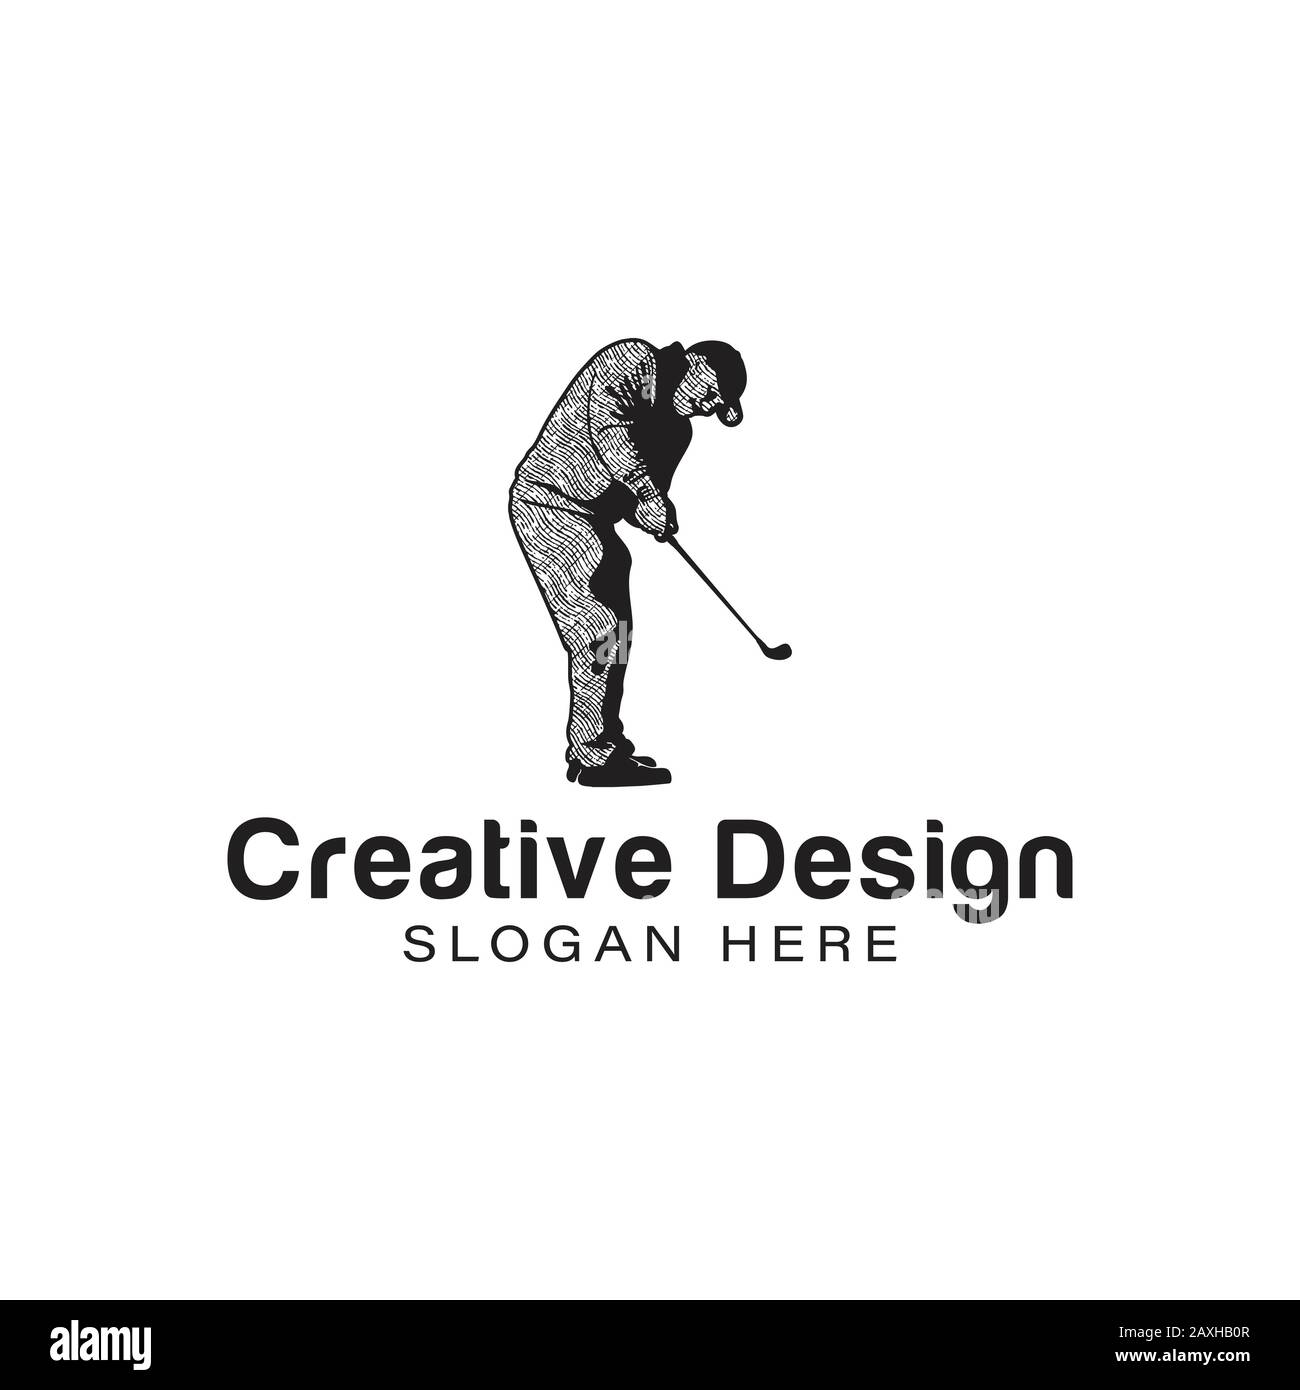 Old Man Playing Golf Logo Ideas Inspiration Logo Design Template Vector Illustration Isolated On White Background Stock Vector Image Art Alamy